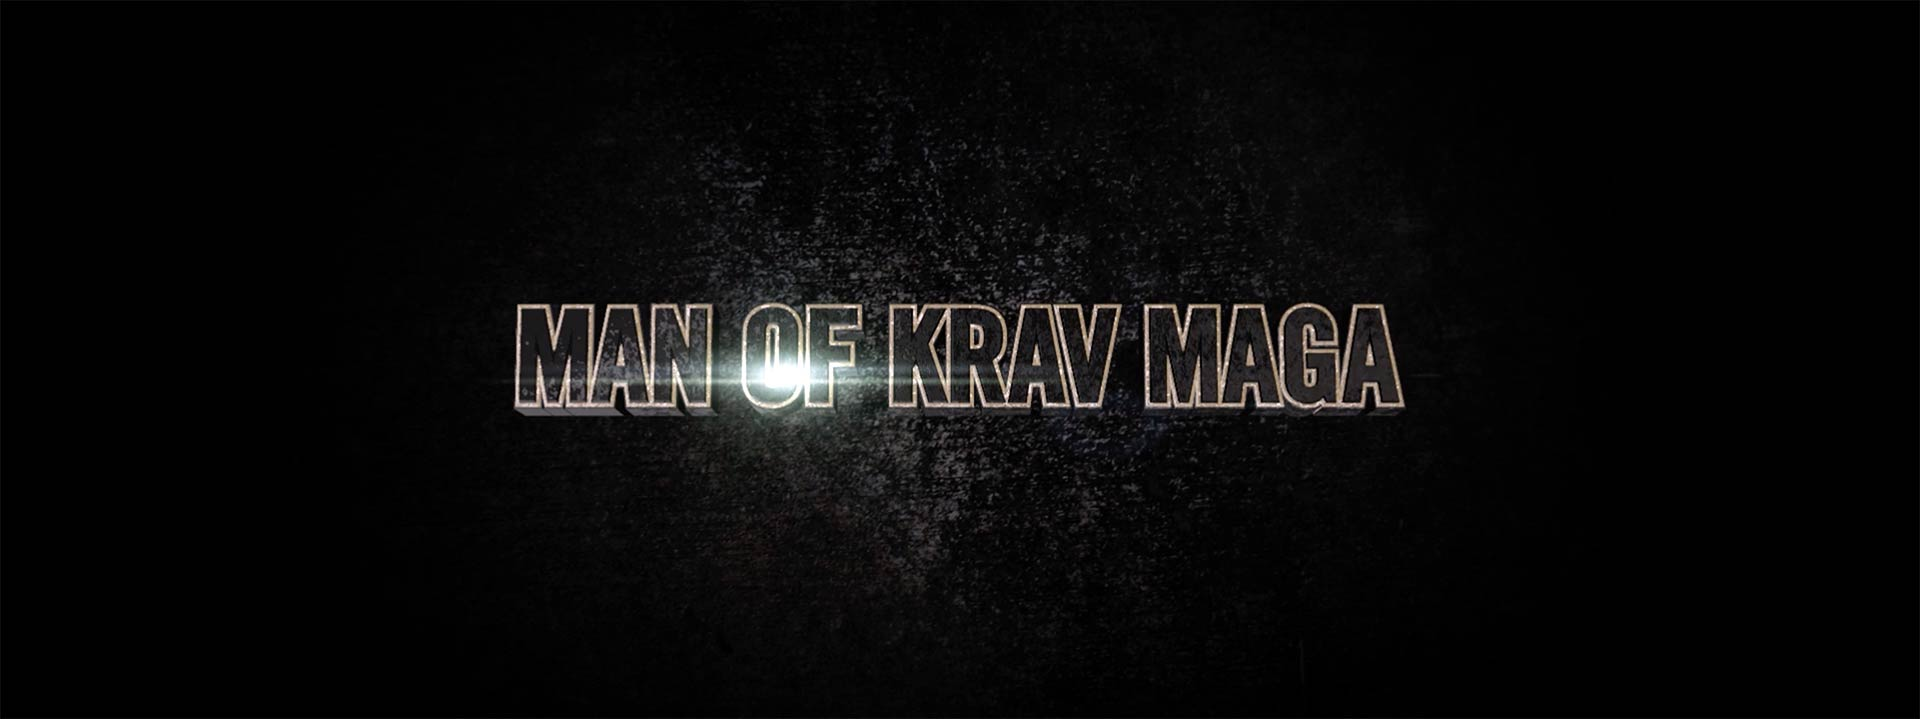 man of kravmaga movie